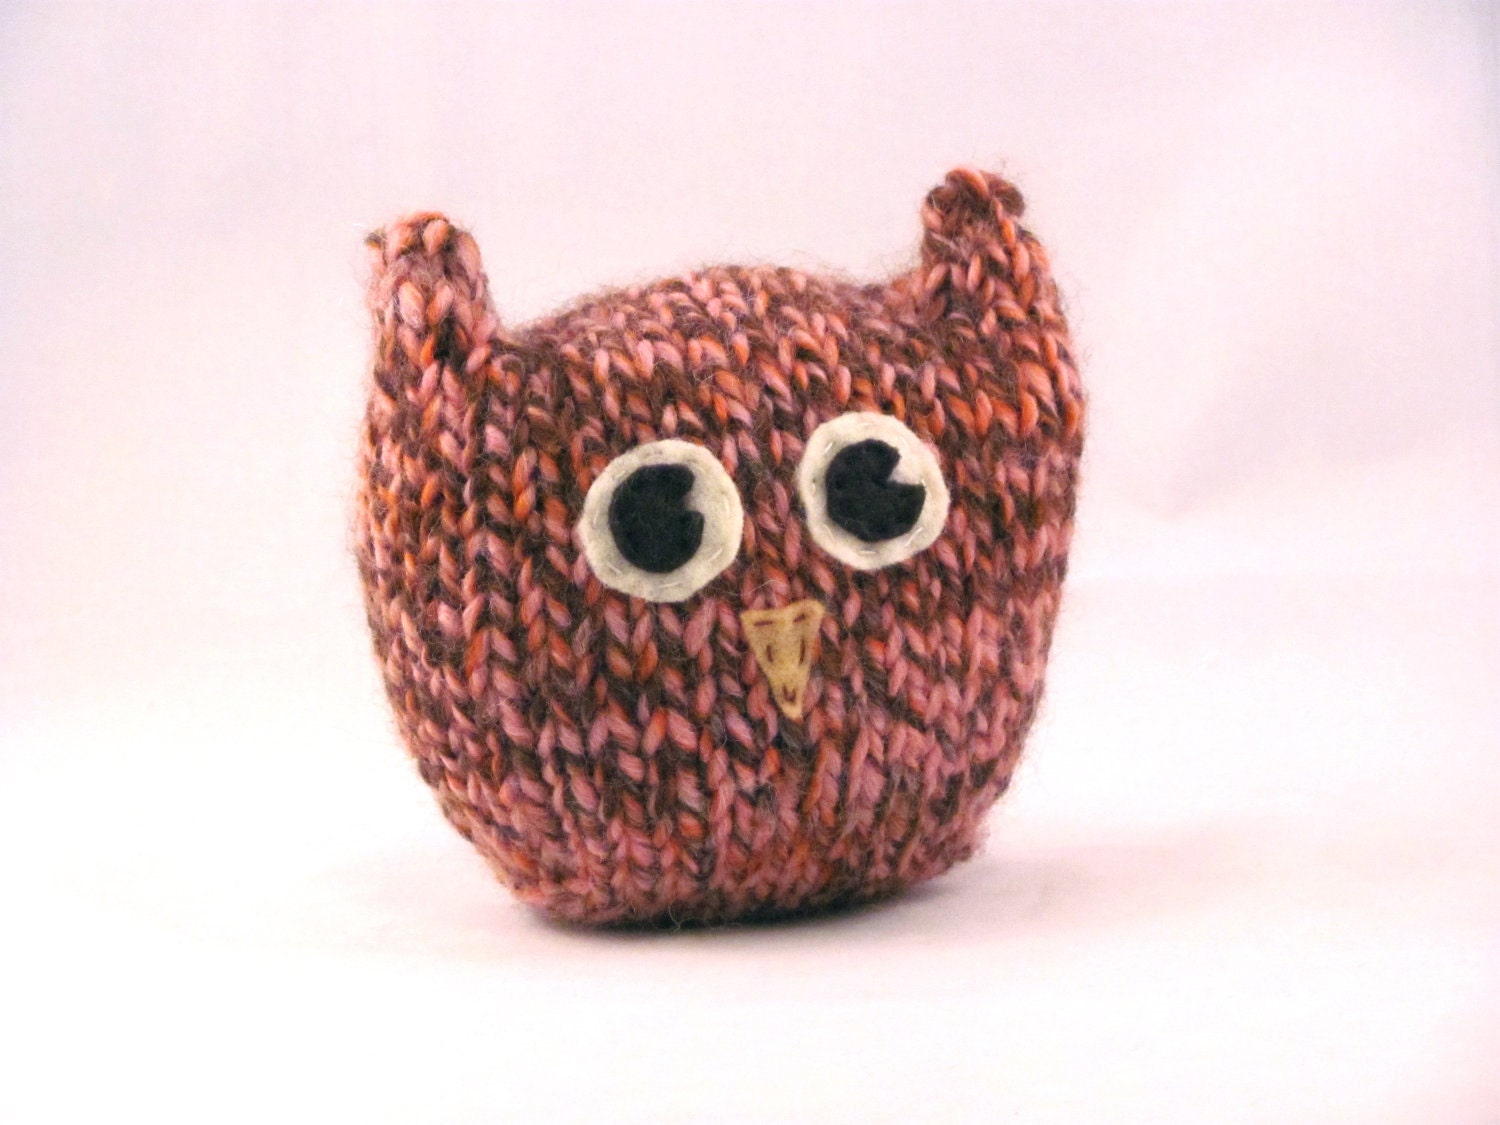 Squishy Owl : Handknit Plush Pink and Brown Soft Squishy Owl Toy